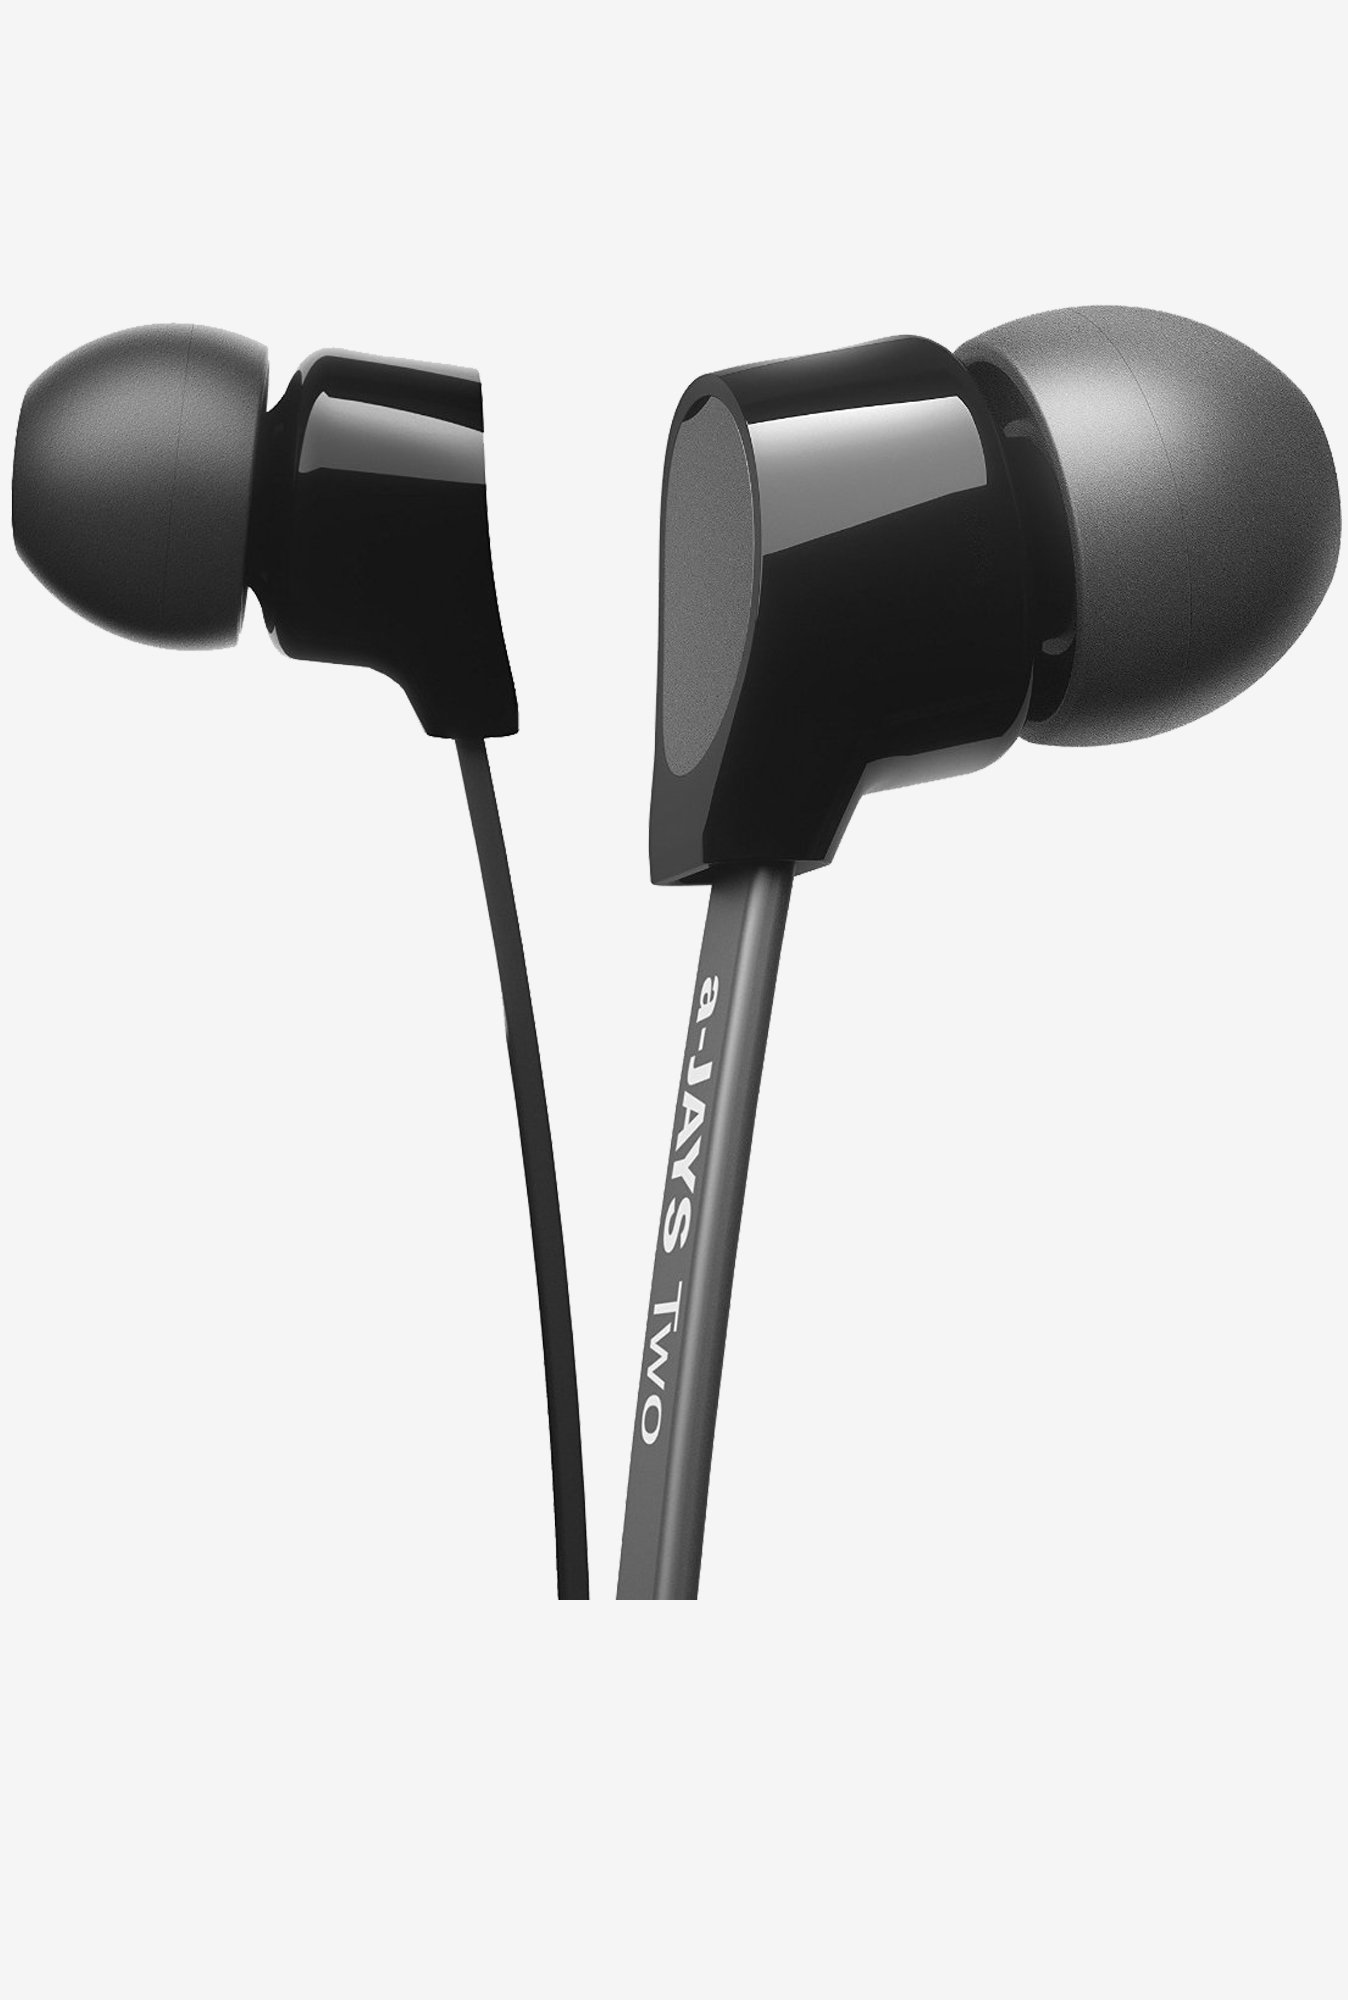 Jays a Jays T00073 Two Heavy Bass Earphone (Black)